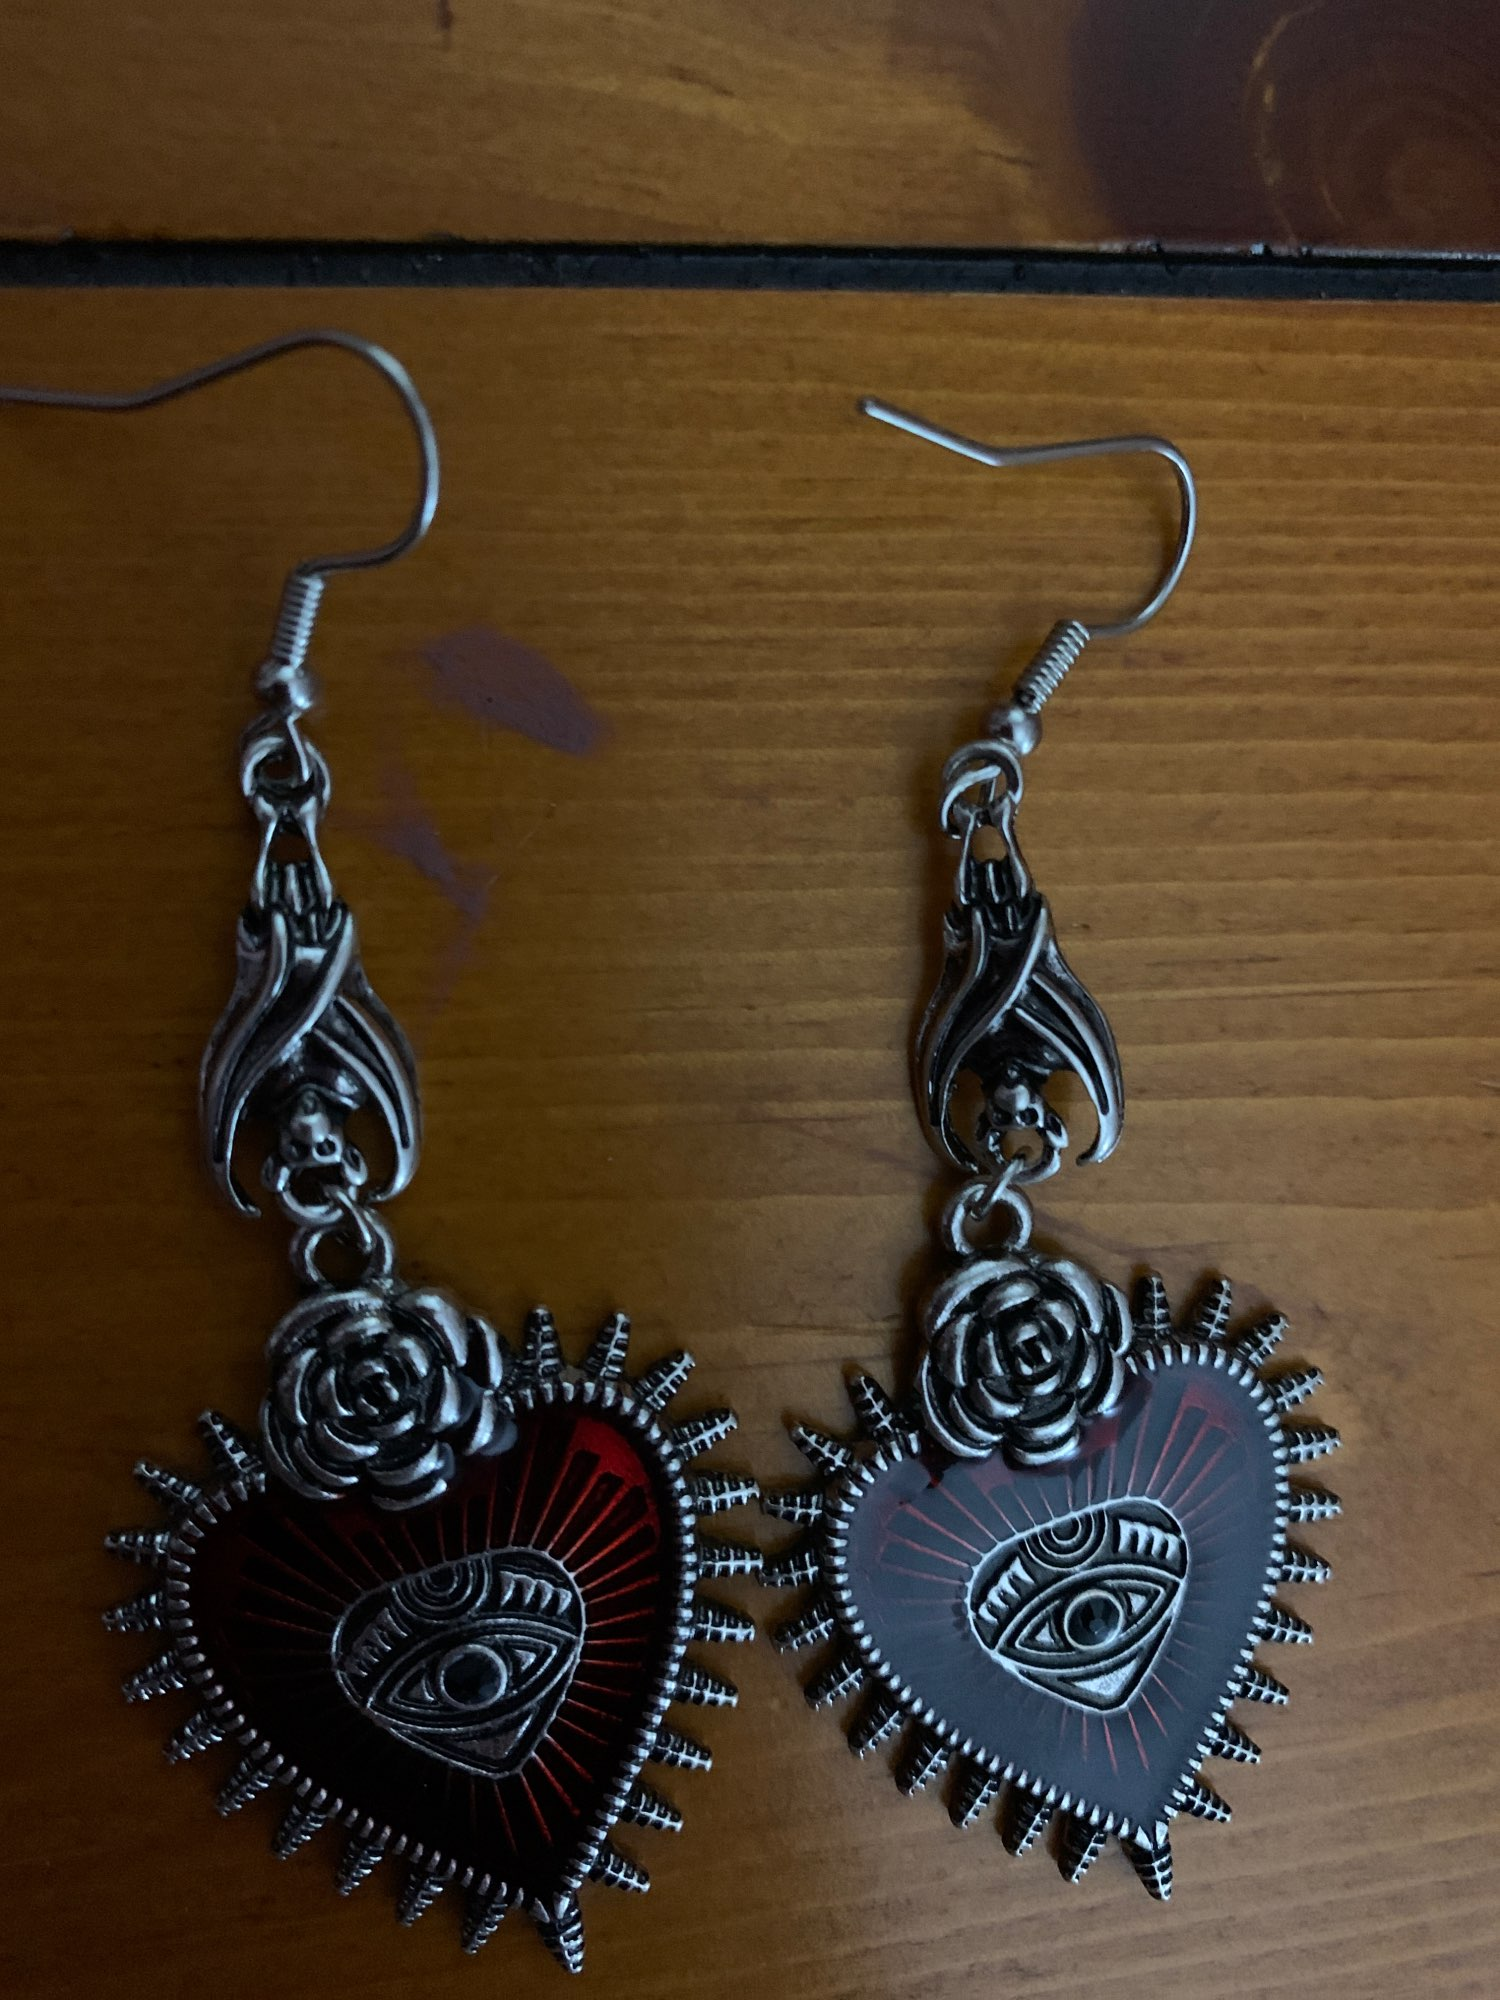 E-girl E-boy Gothic Occult Dark Drop Earring with Blood Rose Heart photo review